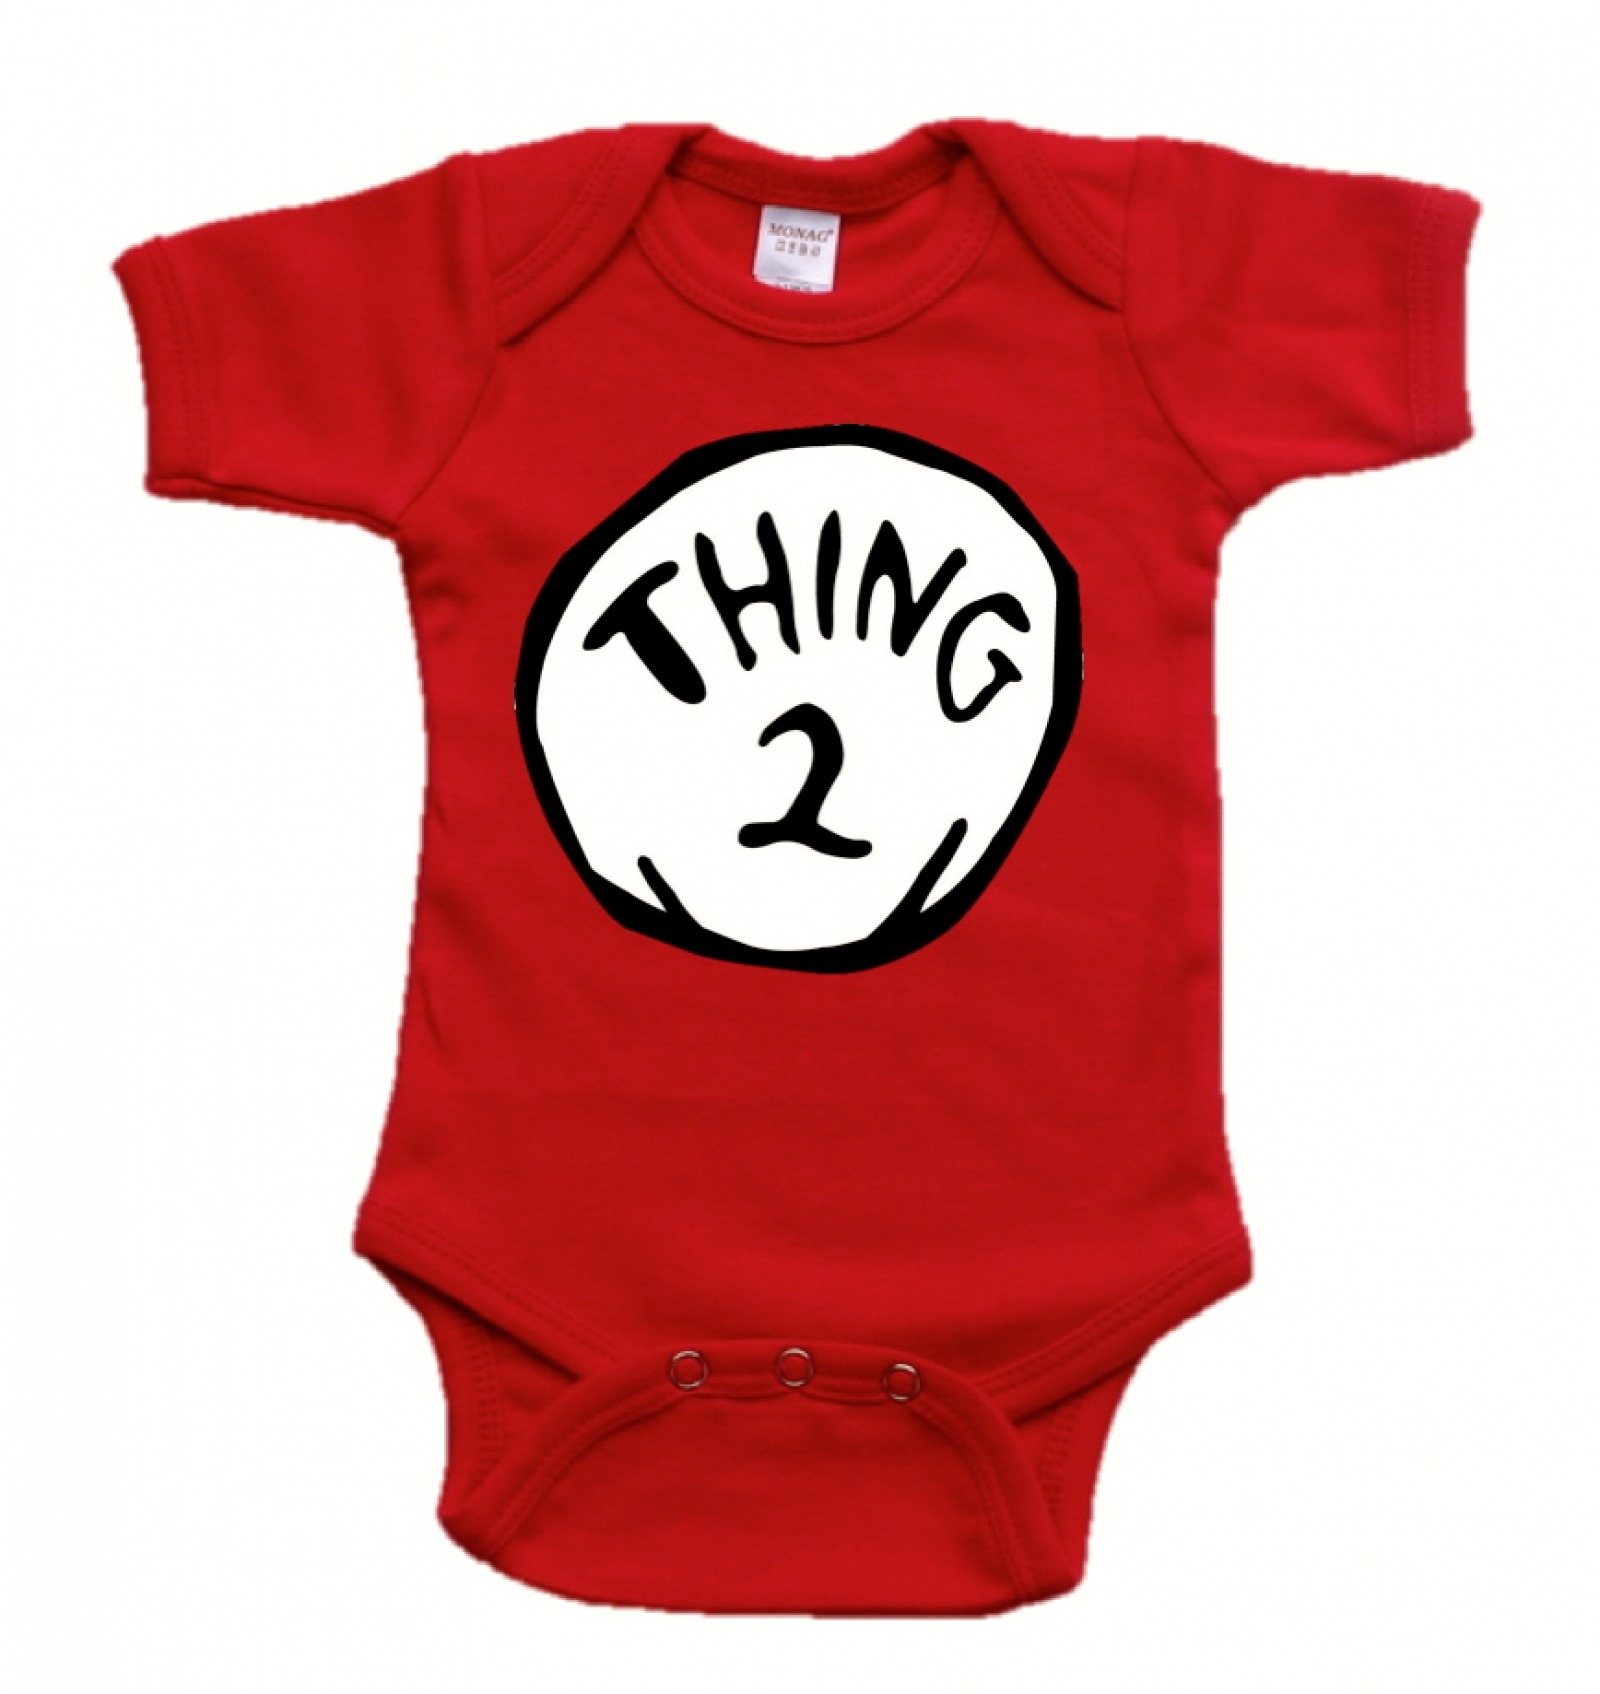 Fullsize Of Thing 1 And Thing 2